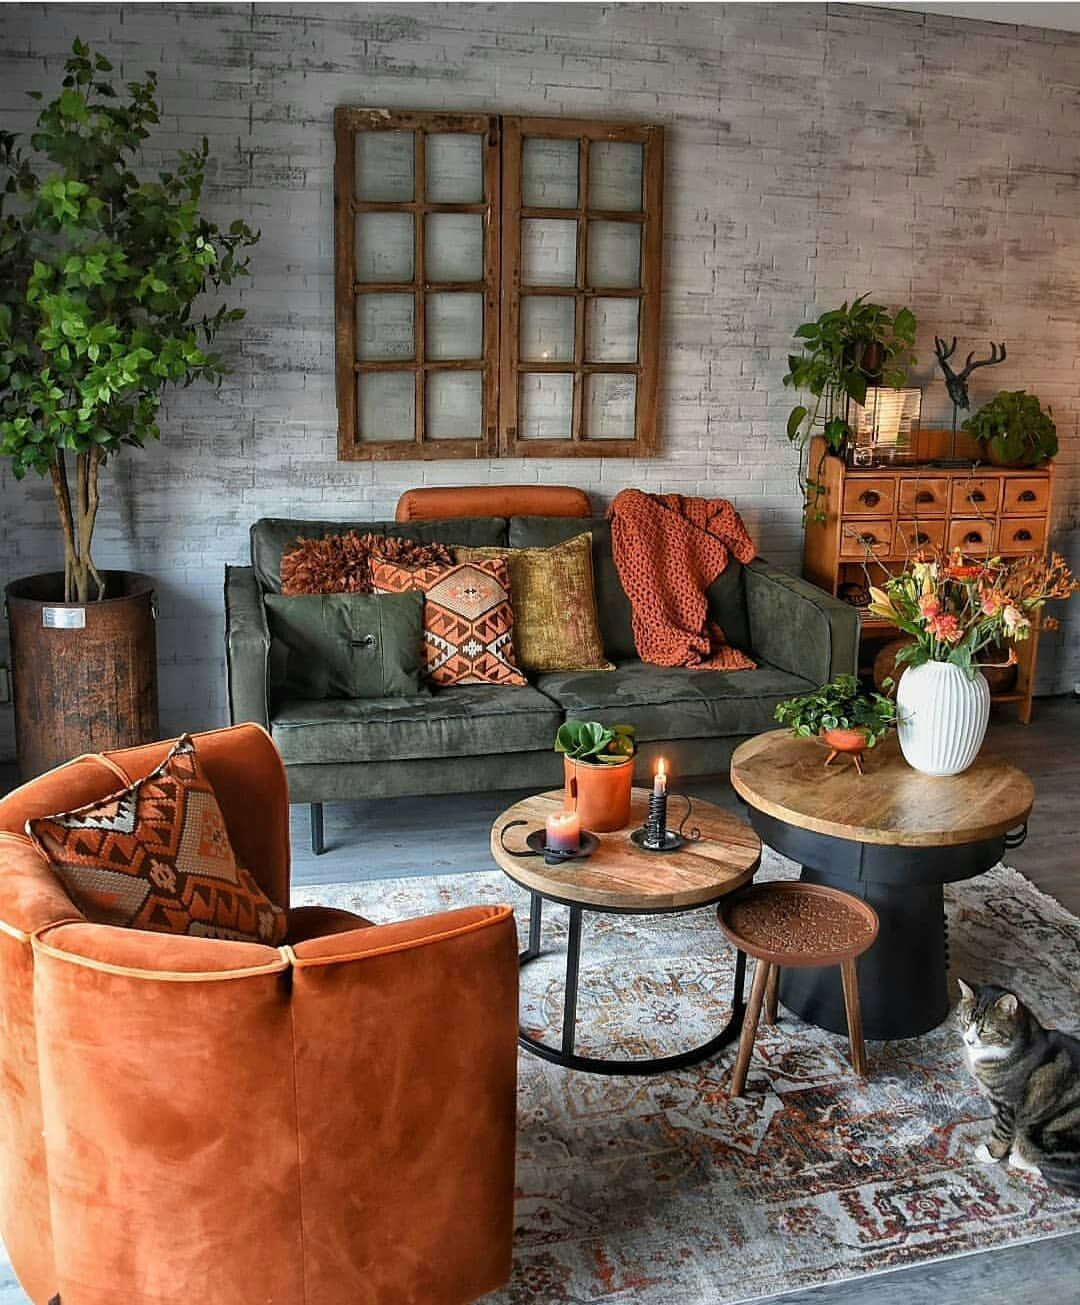 If Your Living Room Is Cramped And Cluttered The Last Thing You Ll Want To Do Is Hang Out There Bu Modern Bohemian Living Room House Interior Apartment Decor Warm living room decor